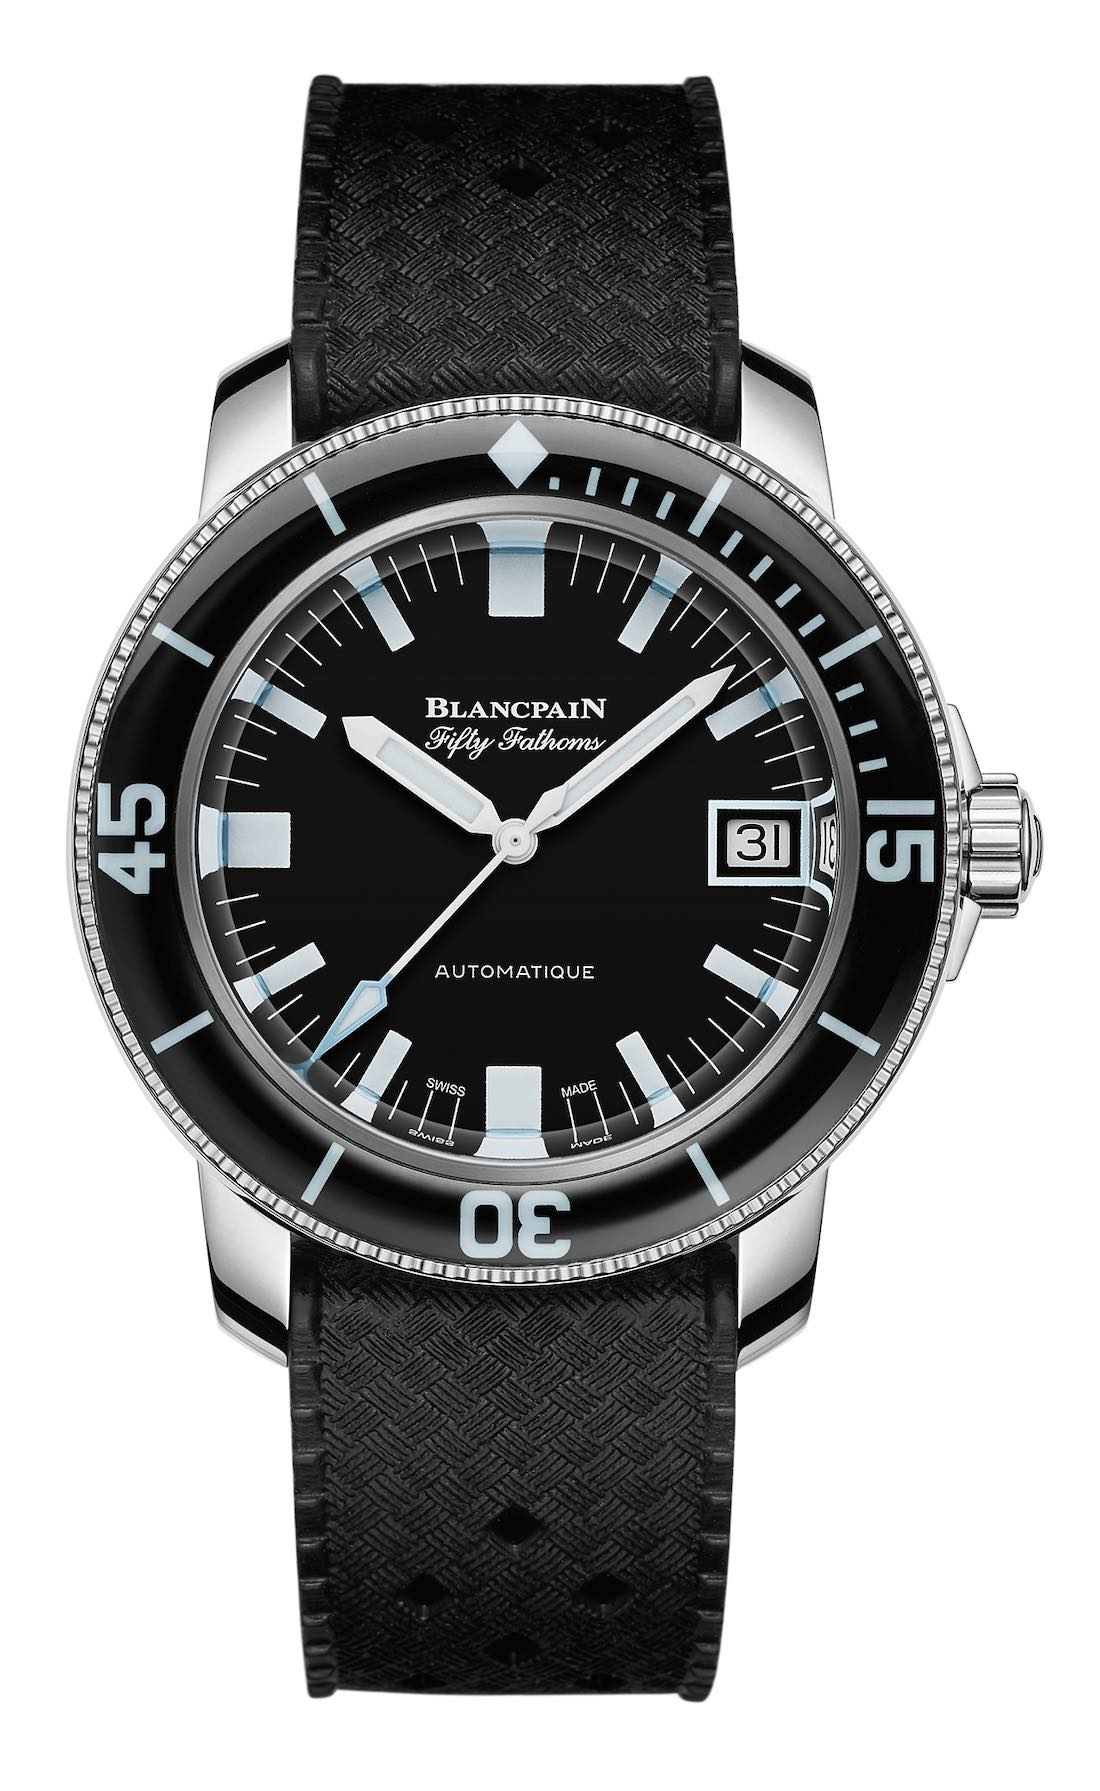 Only WATch 2019 Blancpain